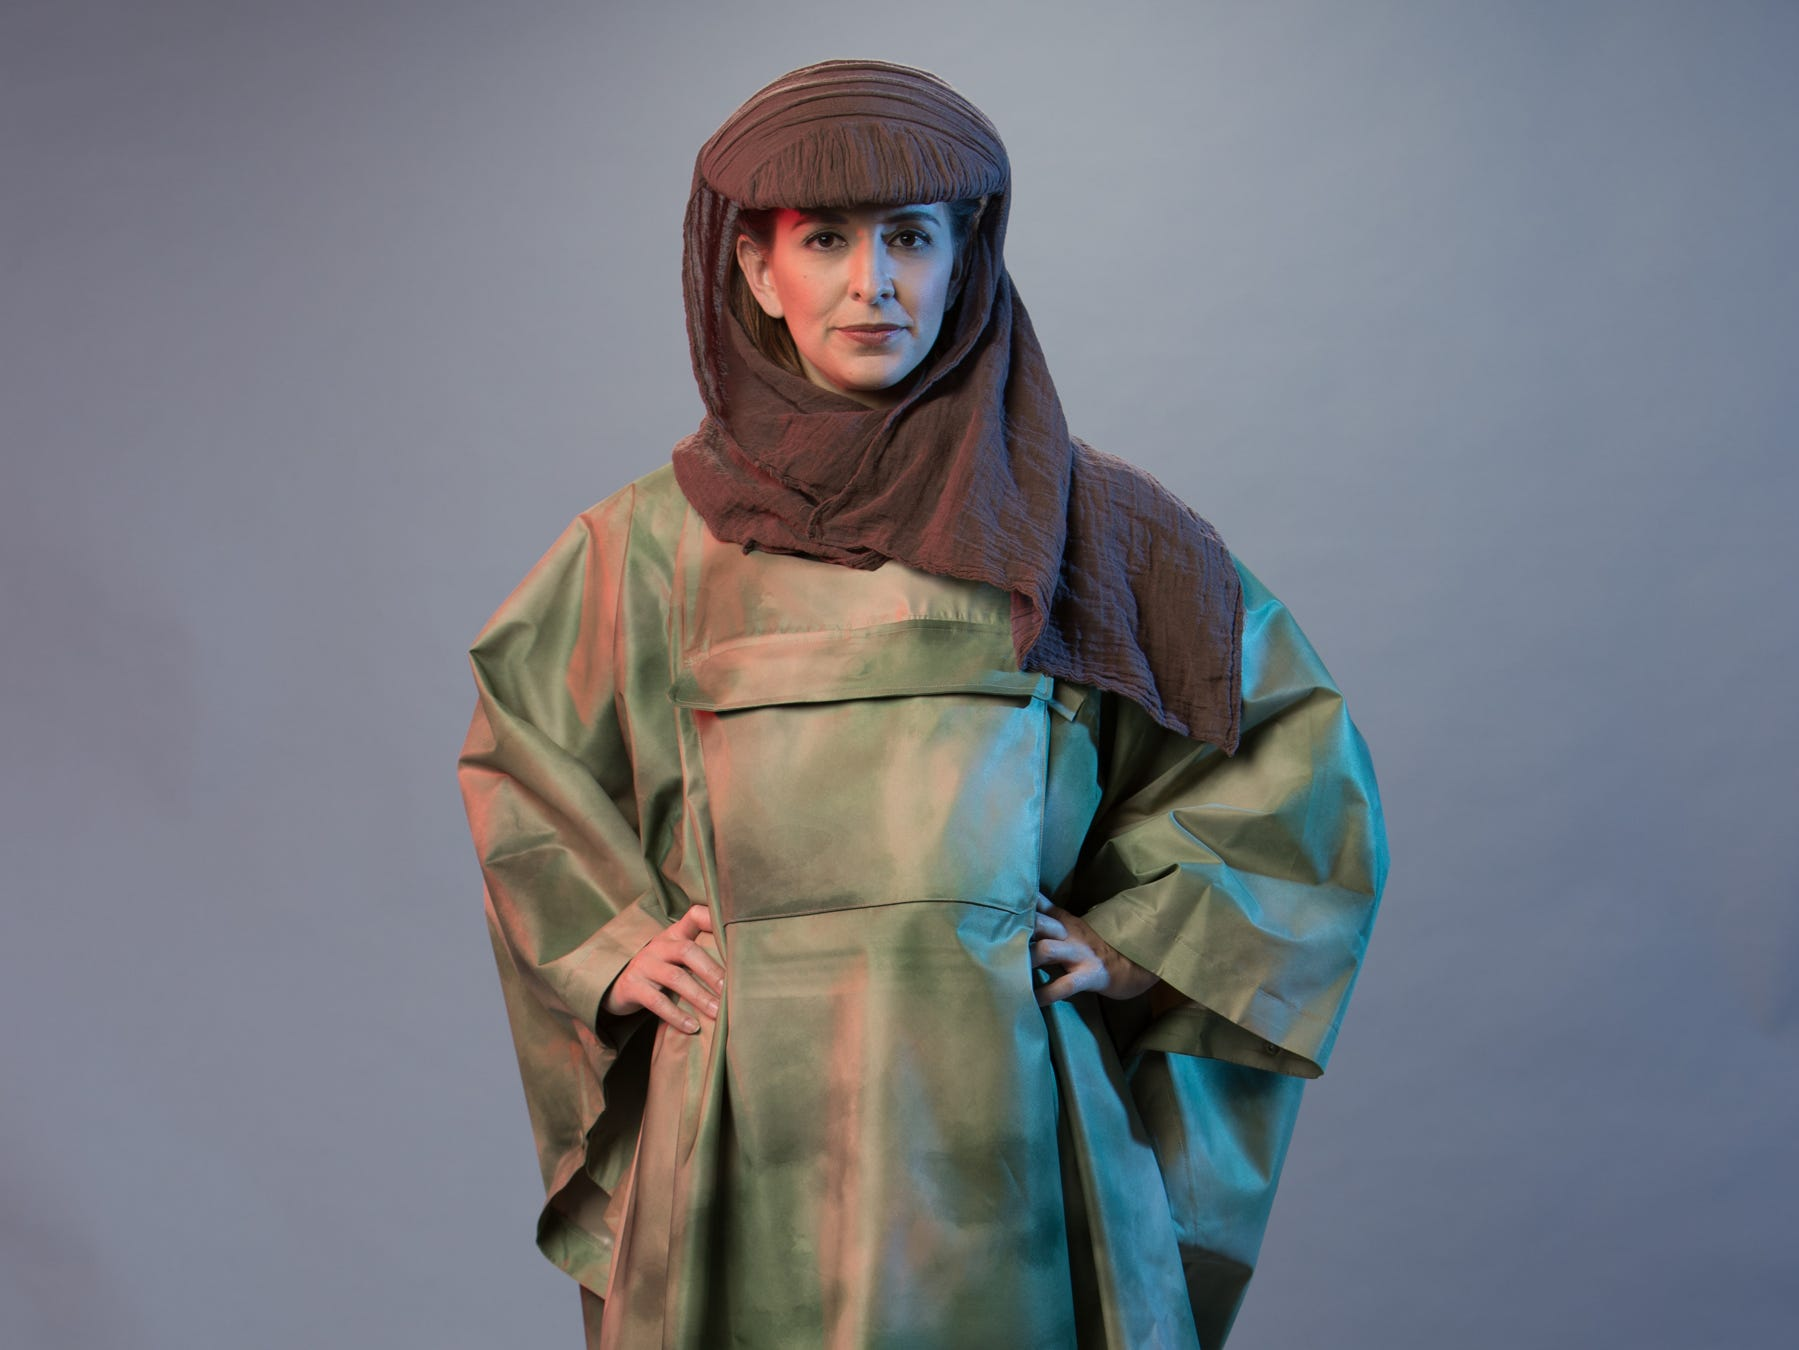 Star Wars: Galaxy's Edge will feature highly detailed Disney Cast Member costumes unique to each area and attractions throughout Black Spire Outpost, a village on the never-before-seen planet of Batuu. Cast Members in villager costumes will interact with guests throughout Black Spire Outpost.